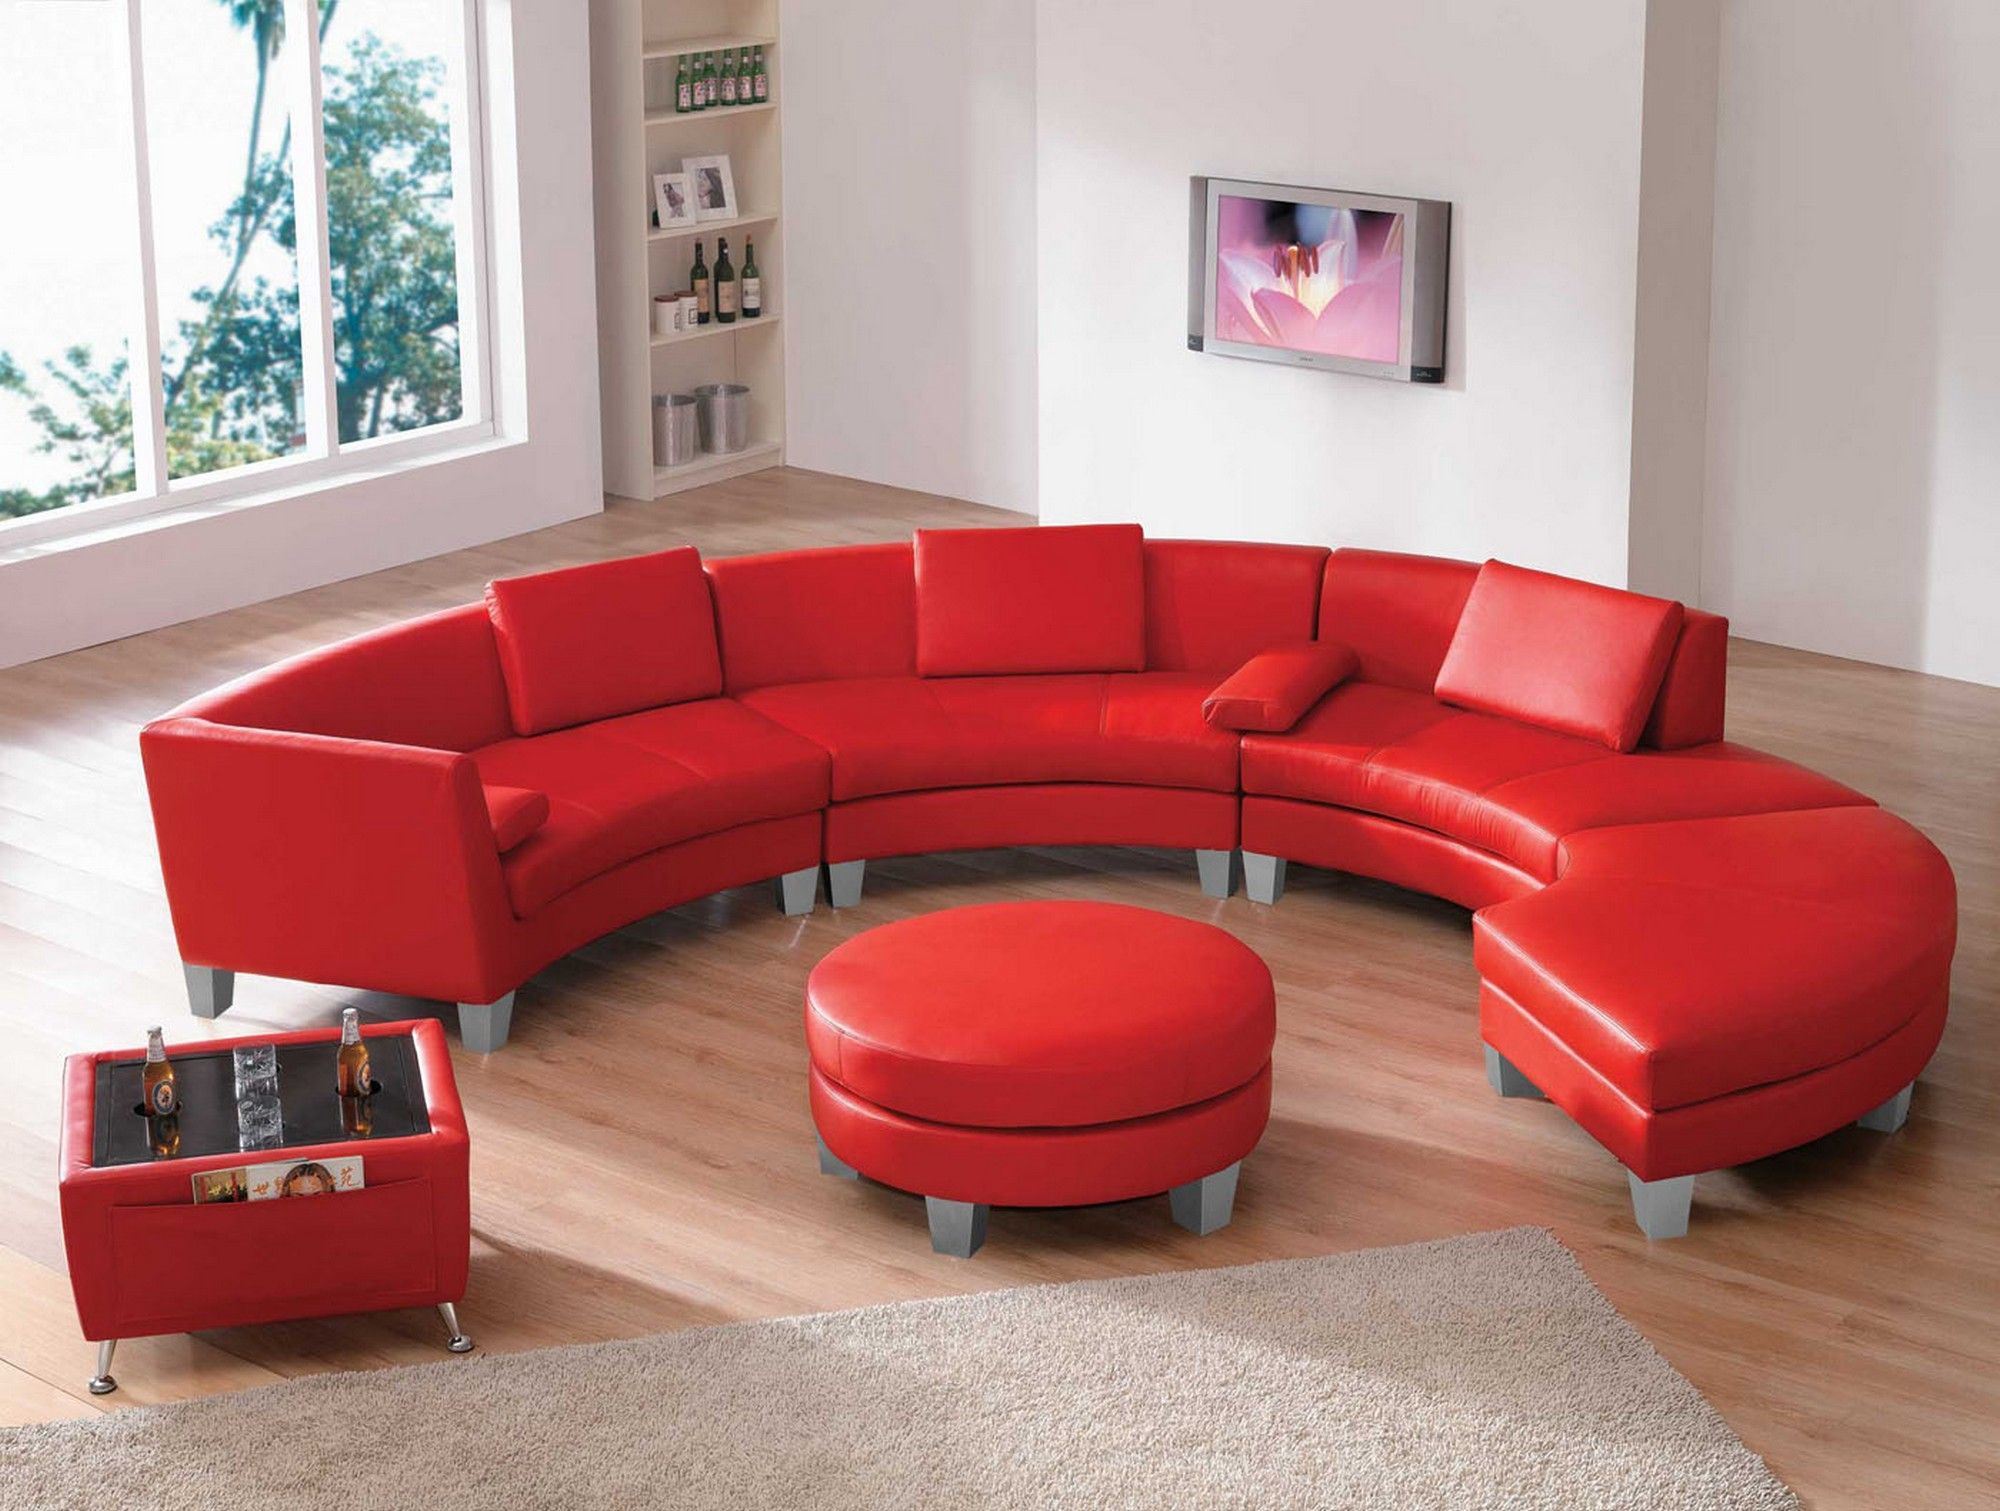 look legs in and give combined seat high enchanting arm sofas plus round interior brown sofa back rest chesterfield sectional red wooden three leather your fabulous house with